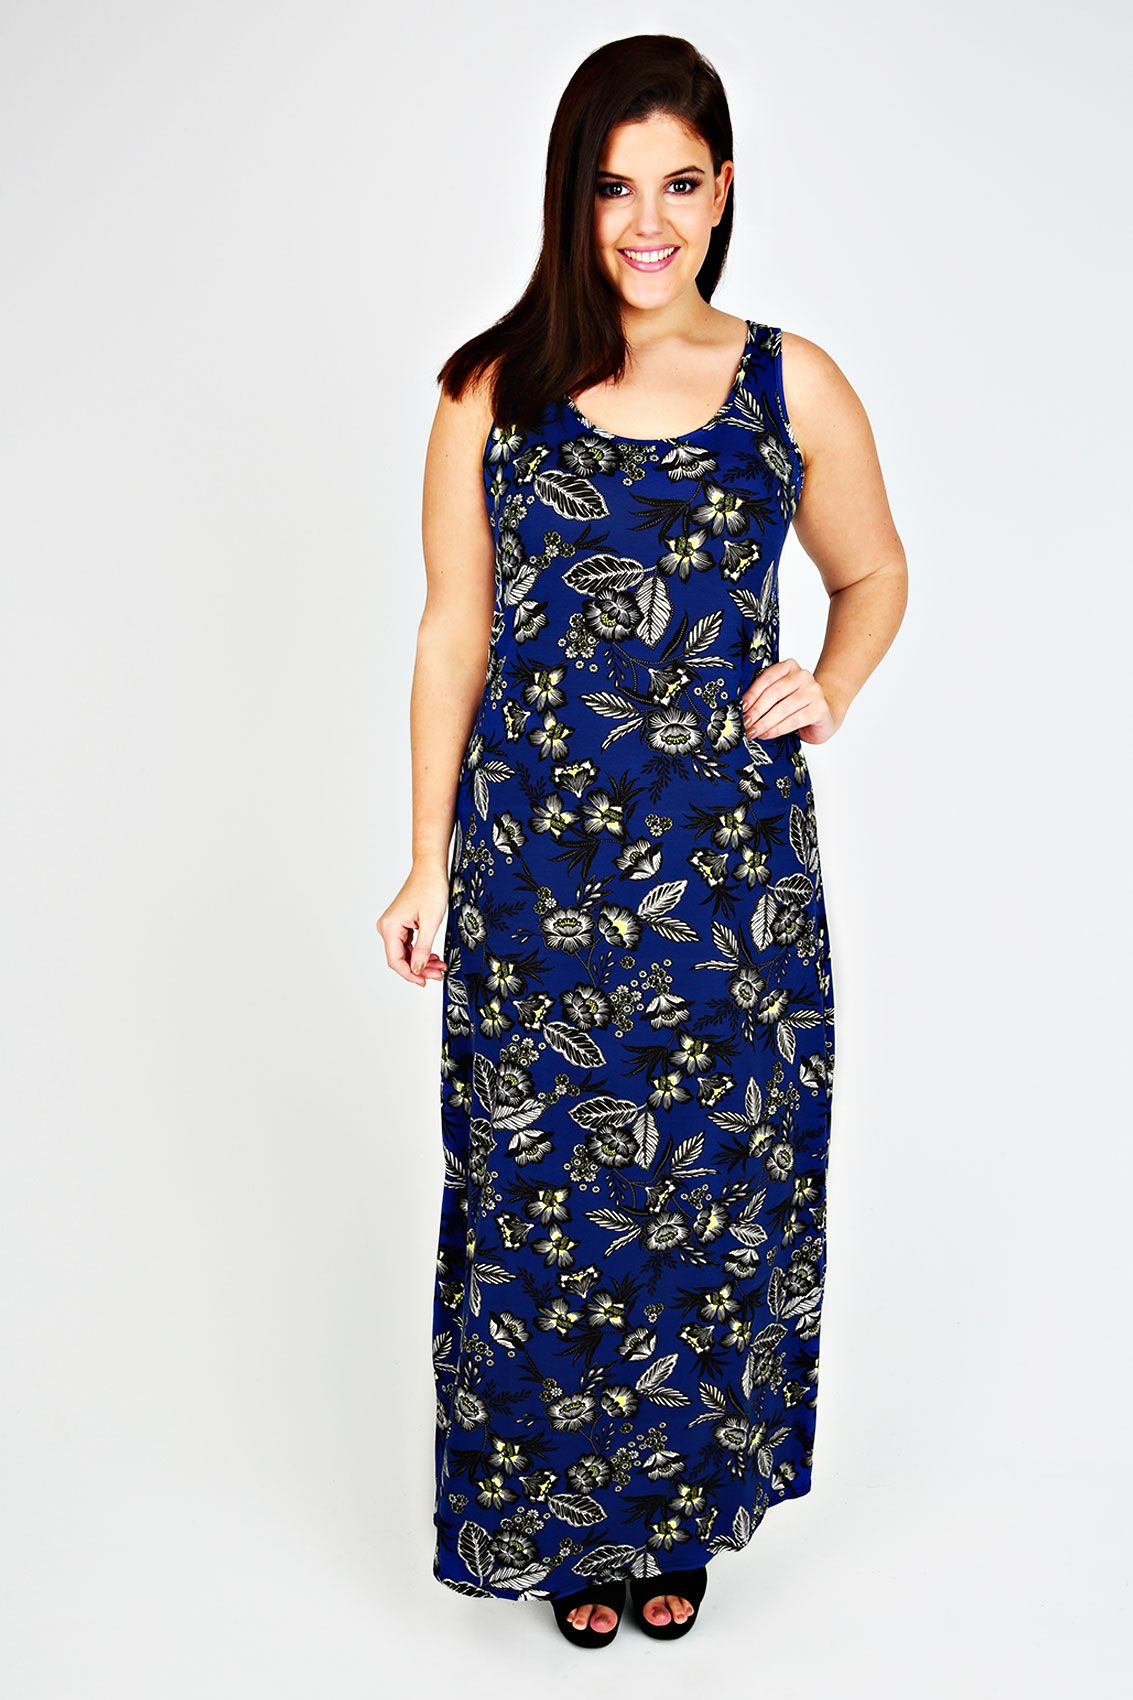 Blue And Yellow Floral Print Sleeveless Maxi Dress Belle Parcelle